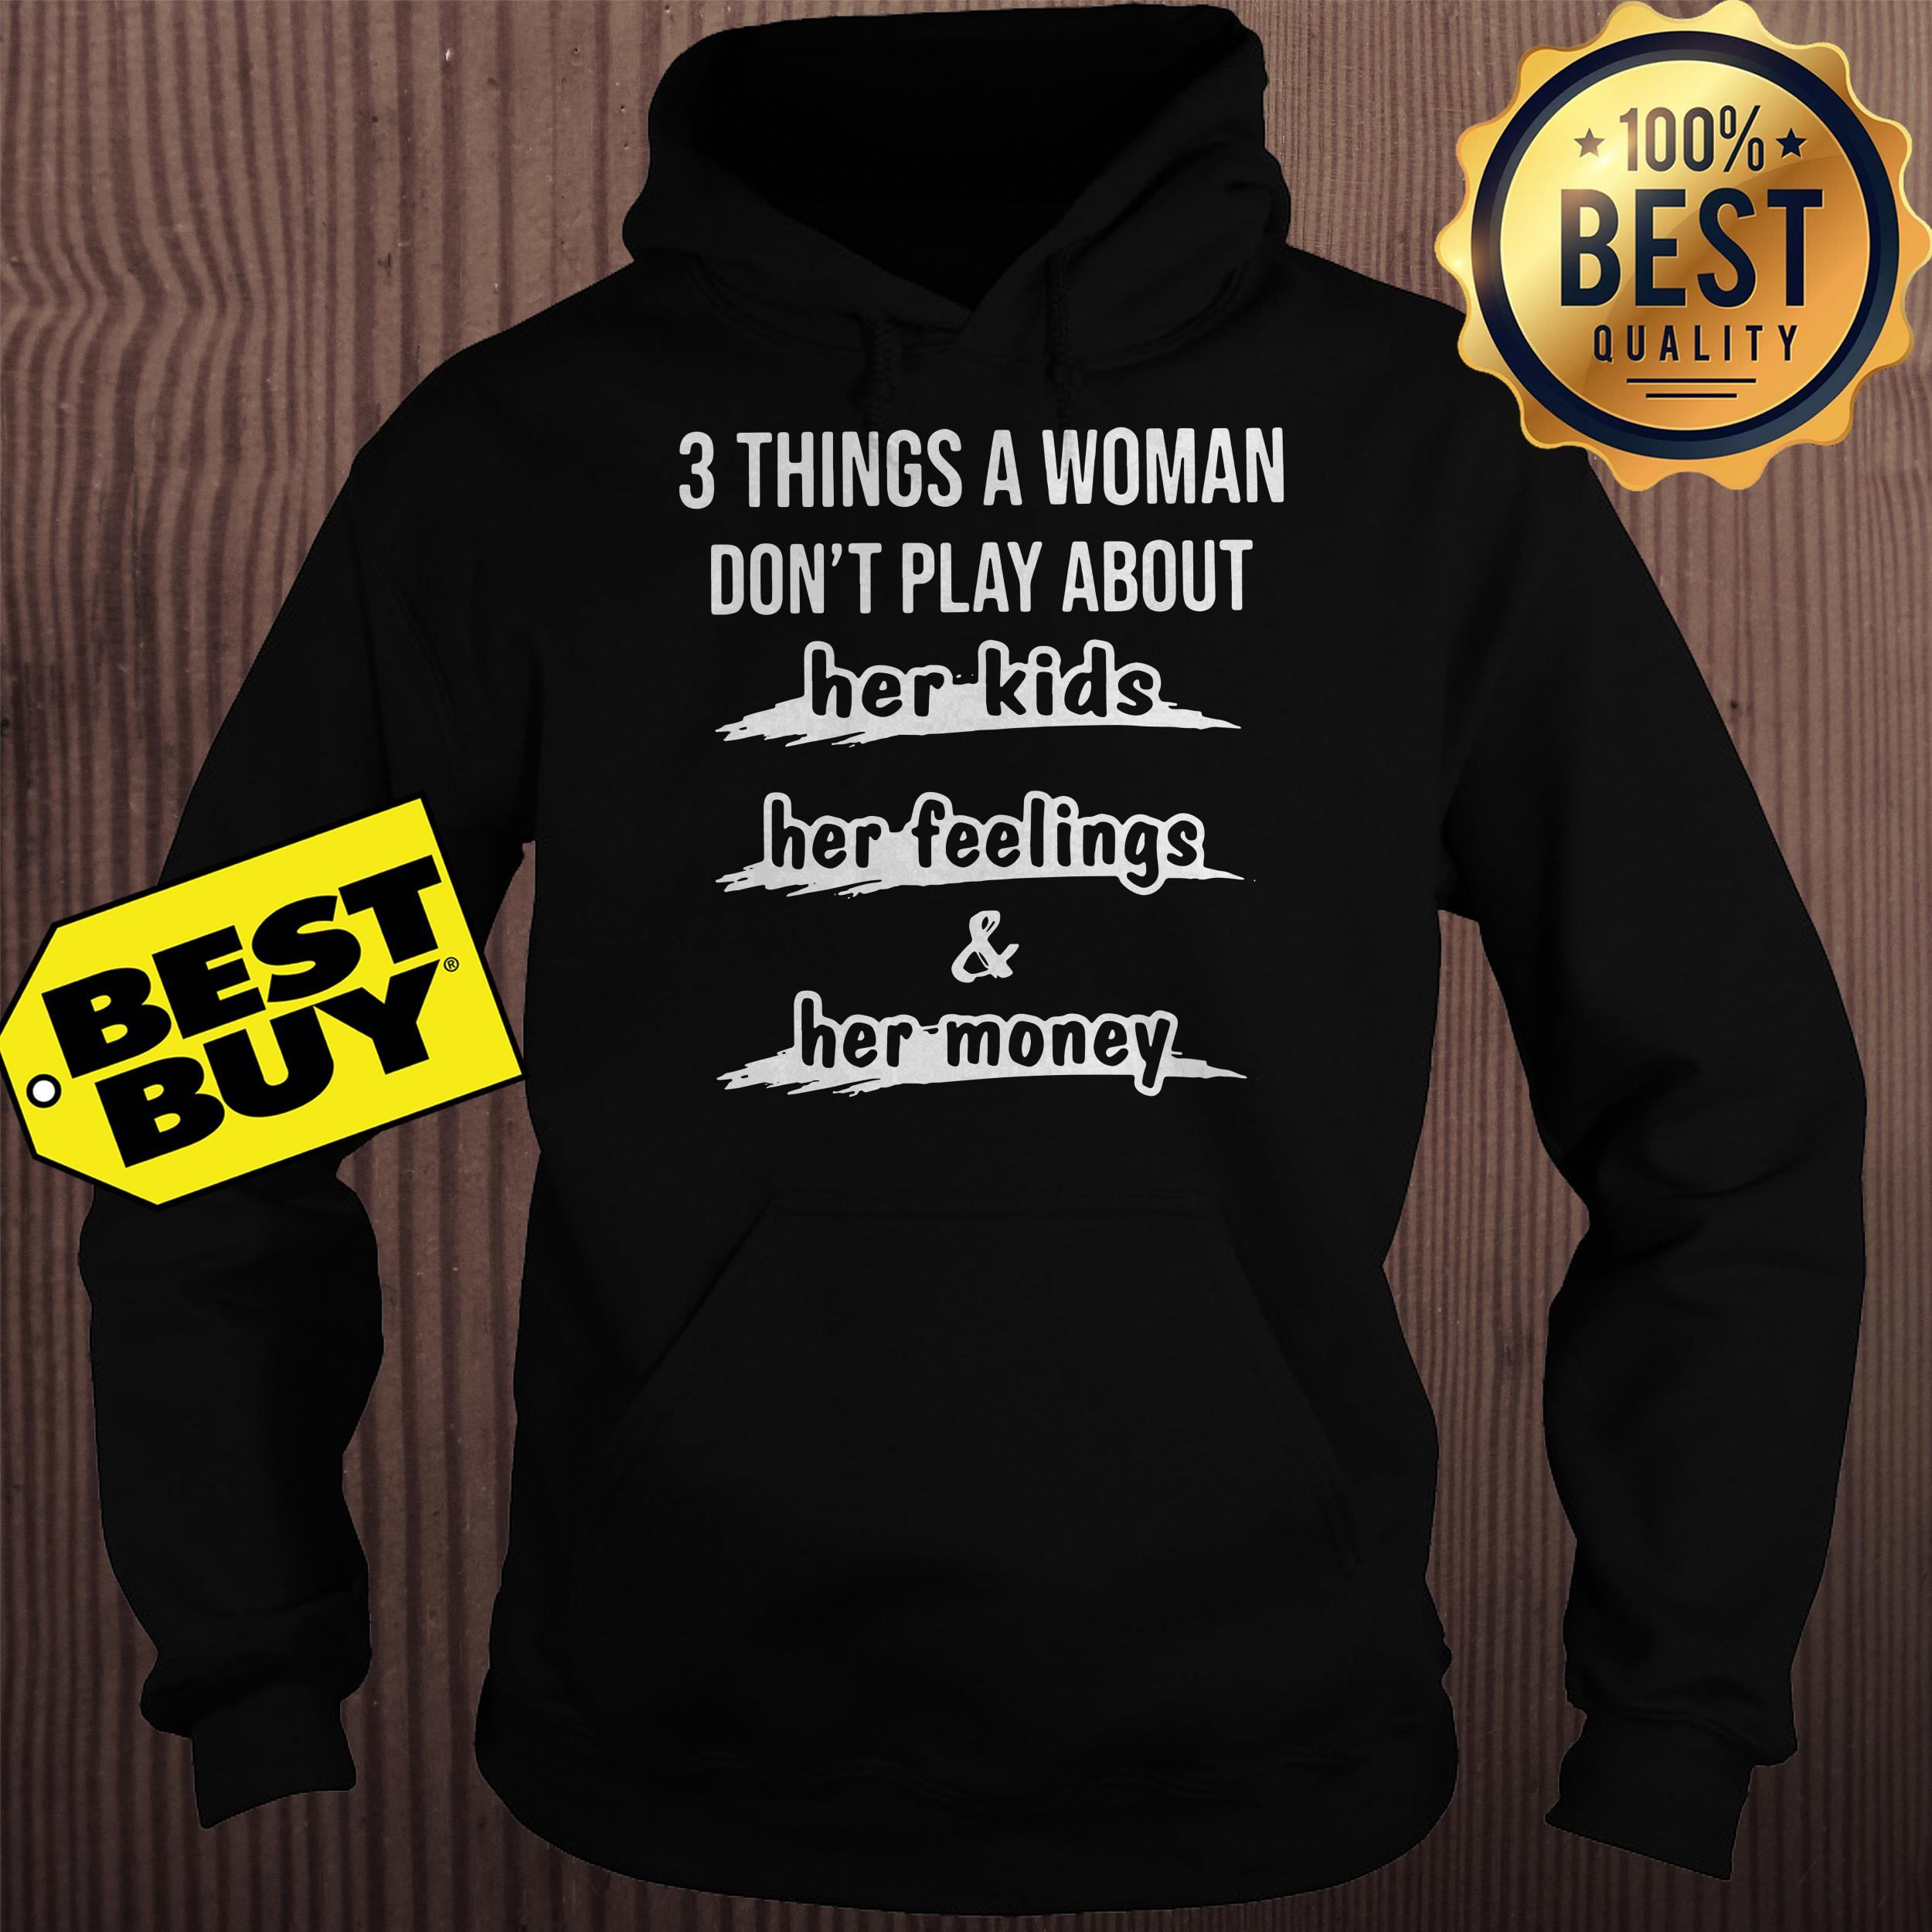 3 things a woman dont play about her kids her feelings and her money hoodie - 3 things a woman don't play about her kids her feelings and her money shirt